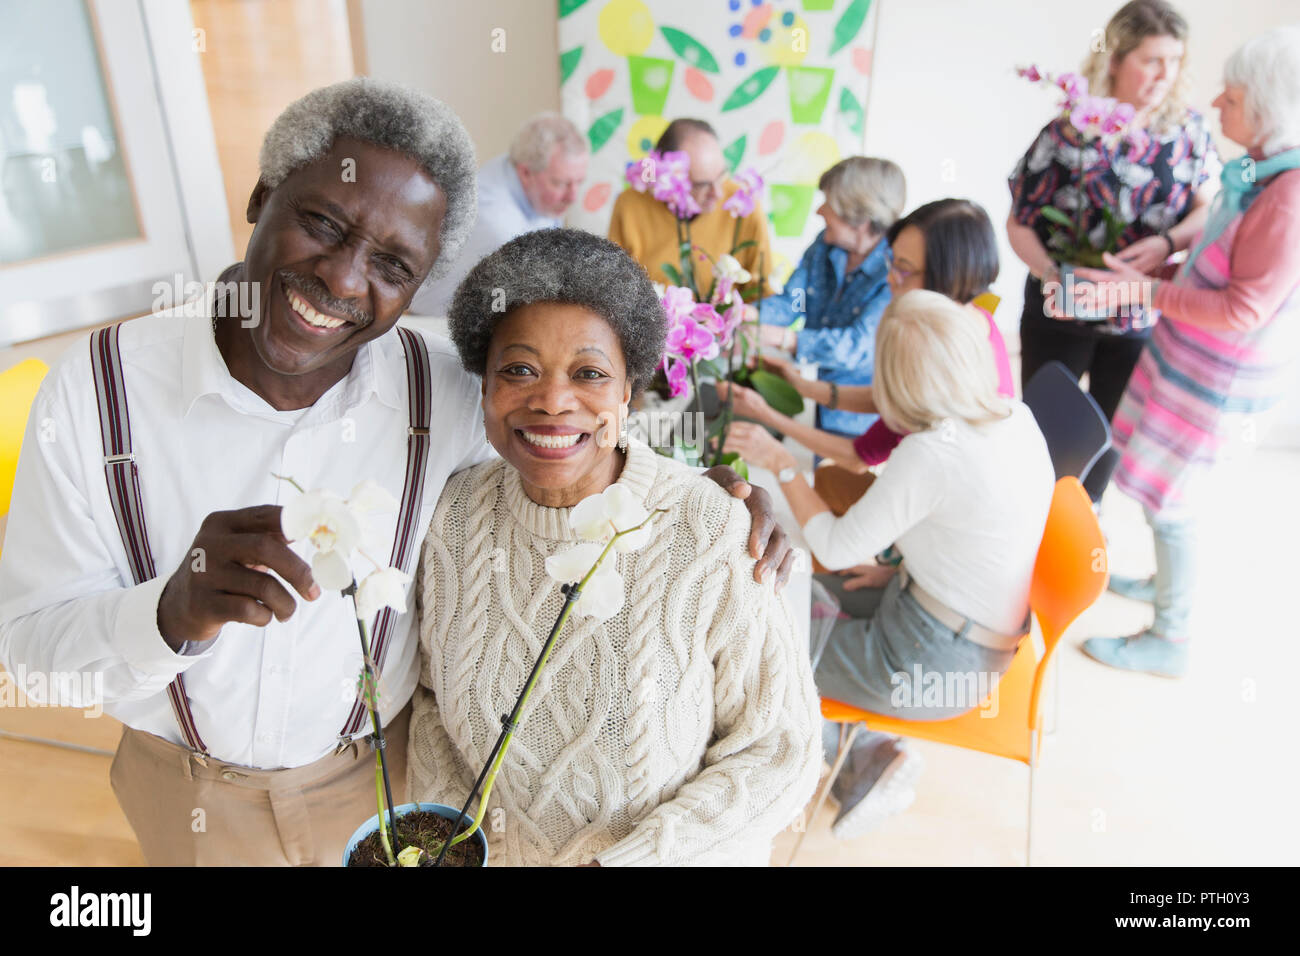 Portrait happy active senior couple enjoying flower arranging class - Stock Image